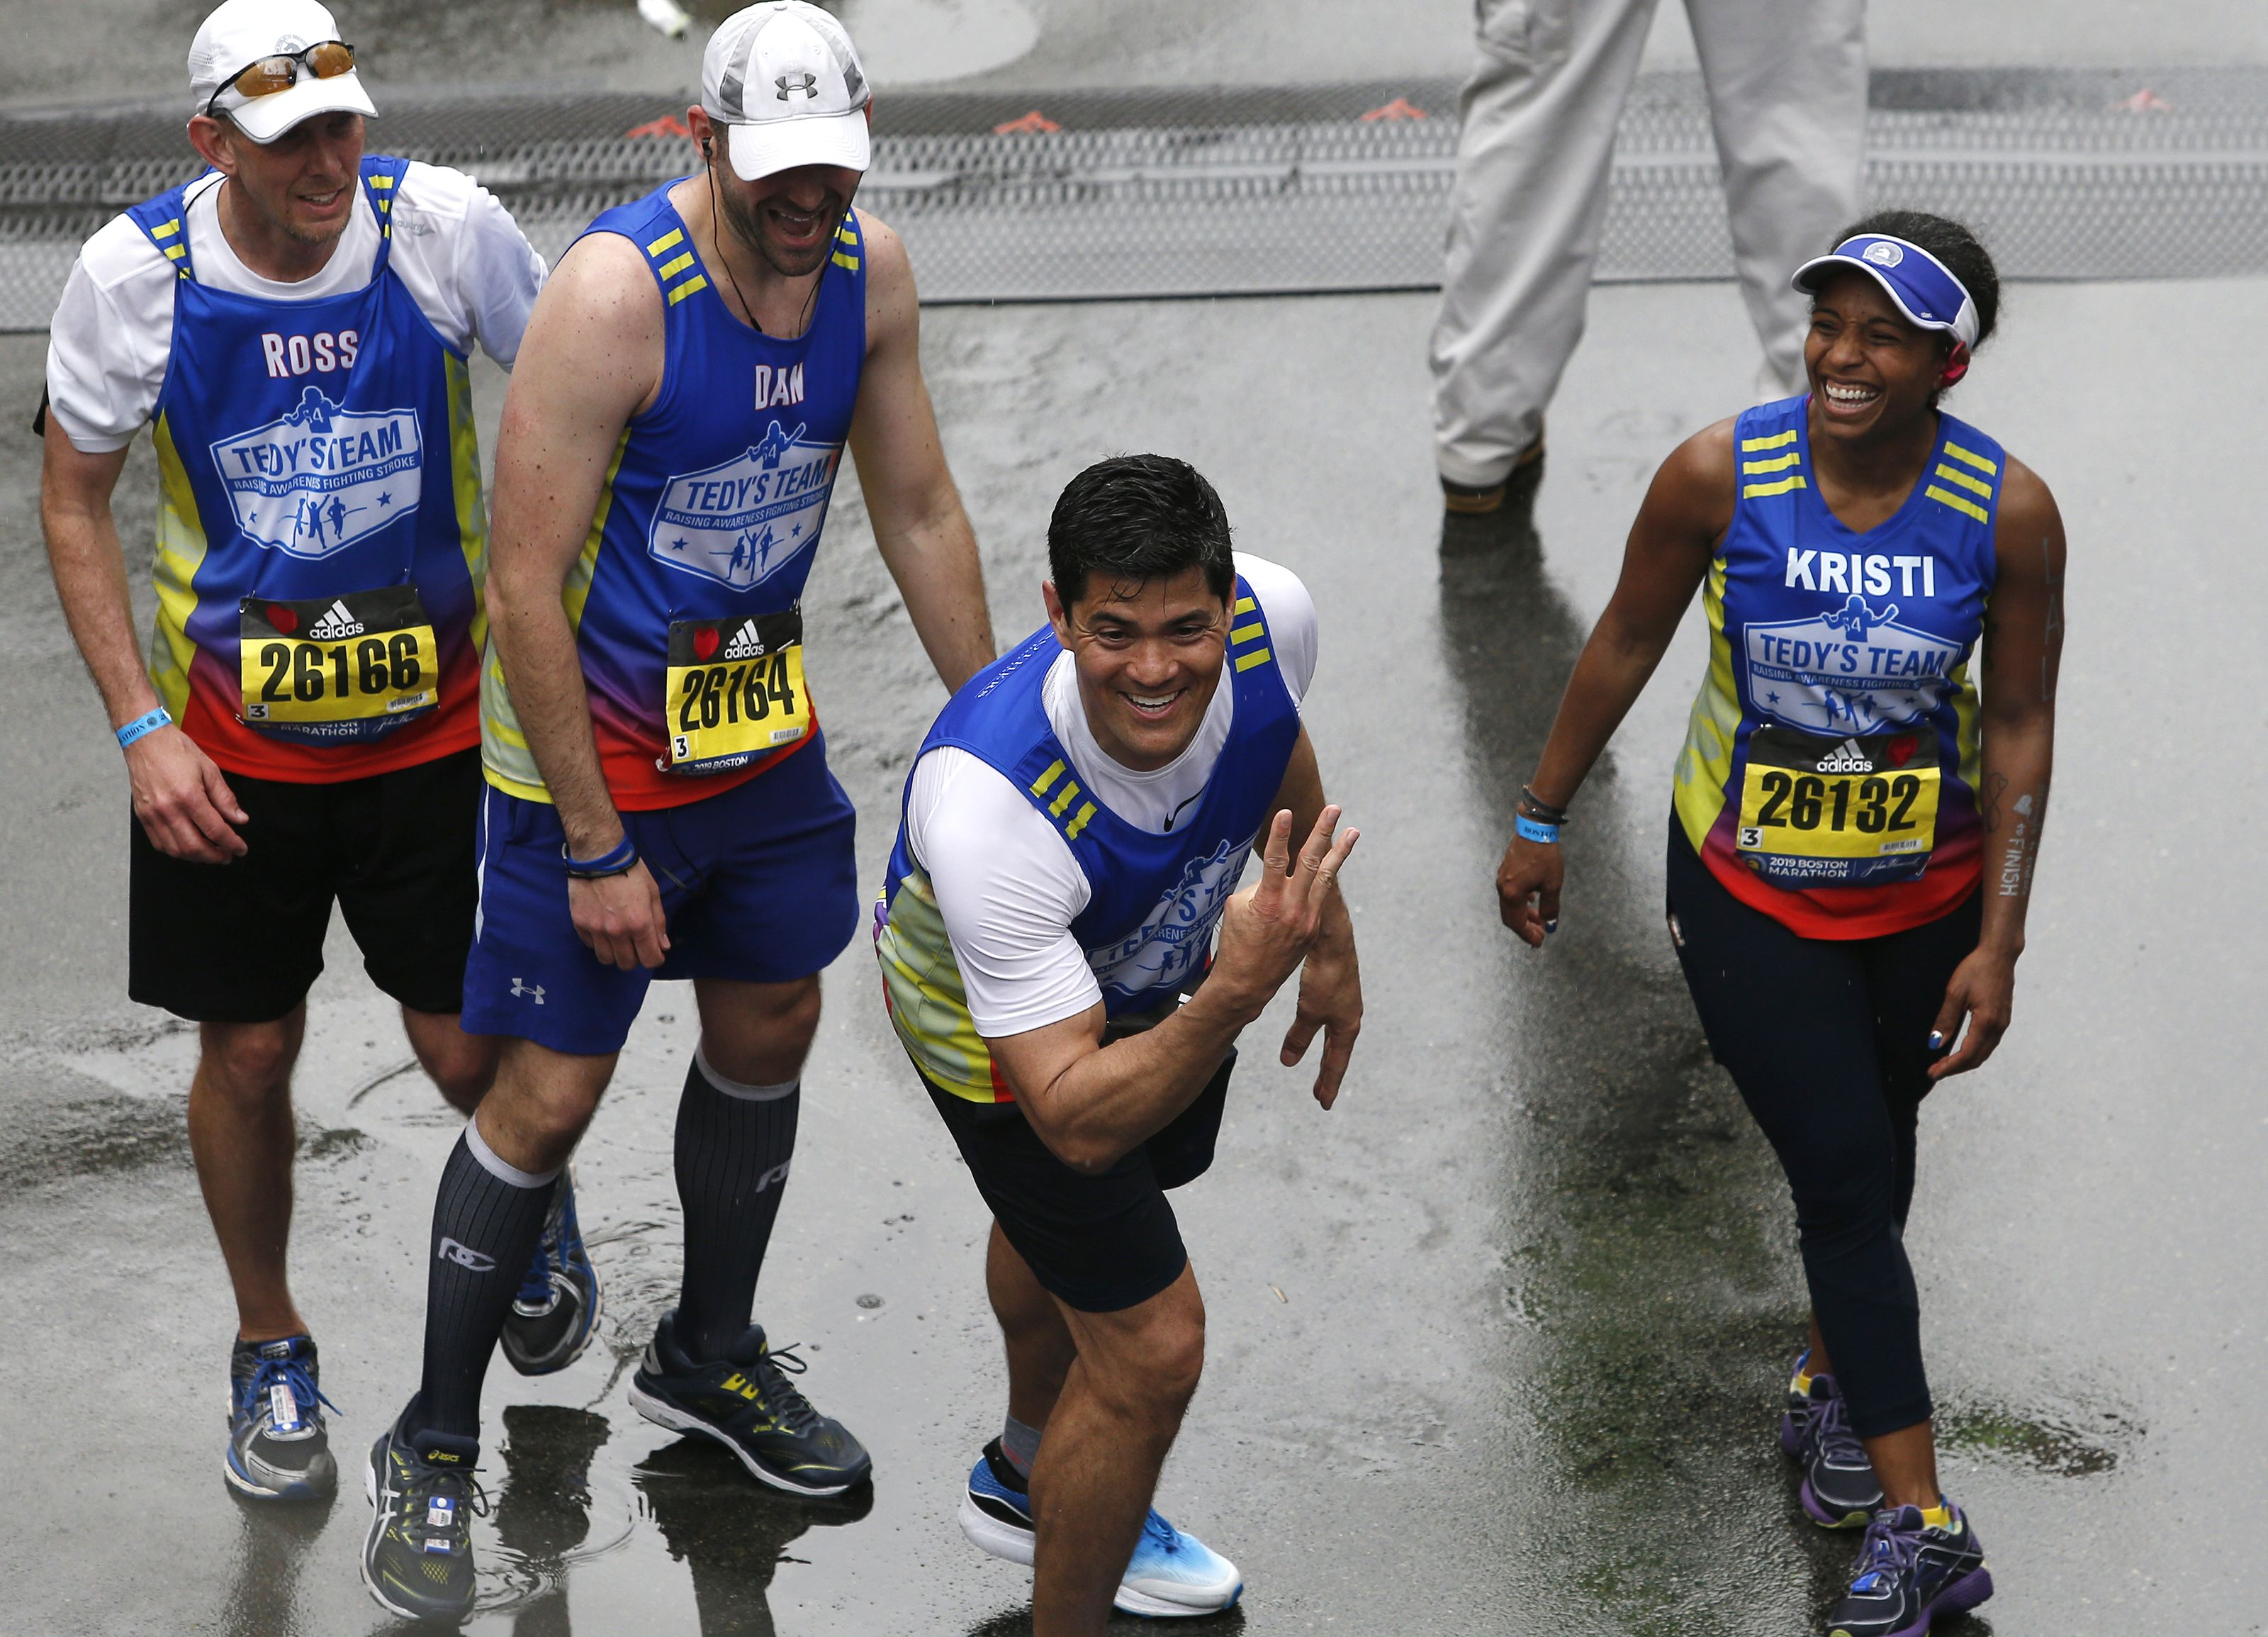 Faced With Fundraising a Second Time, Boston Charity Runners Cry Foul